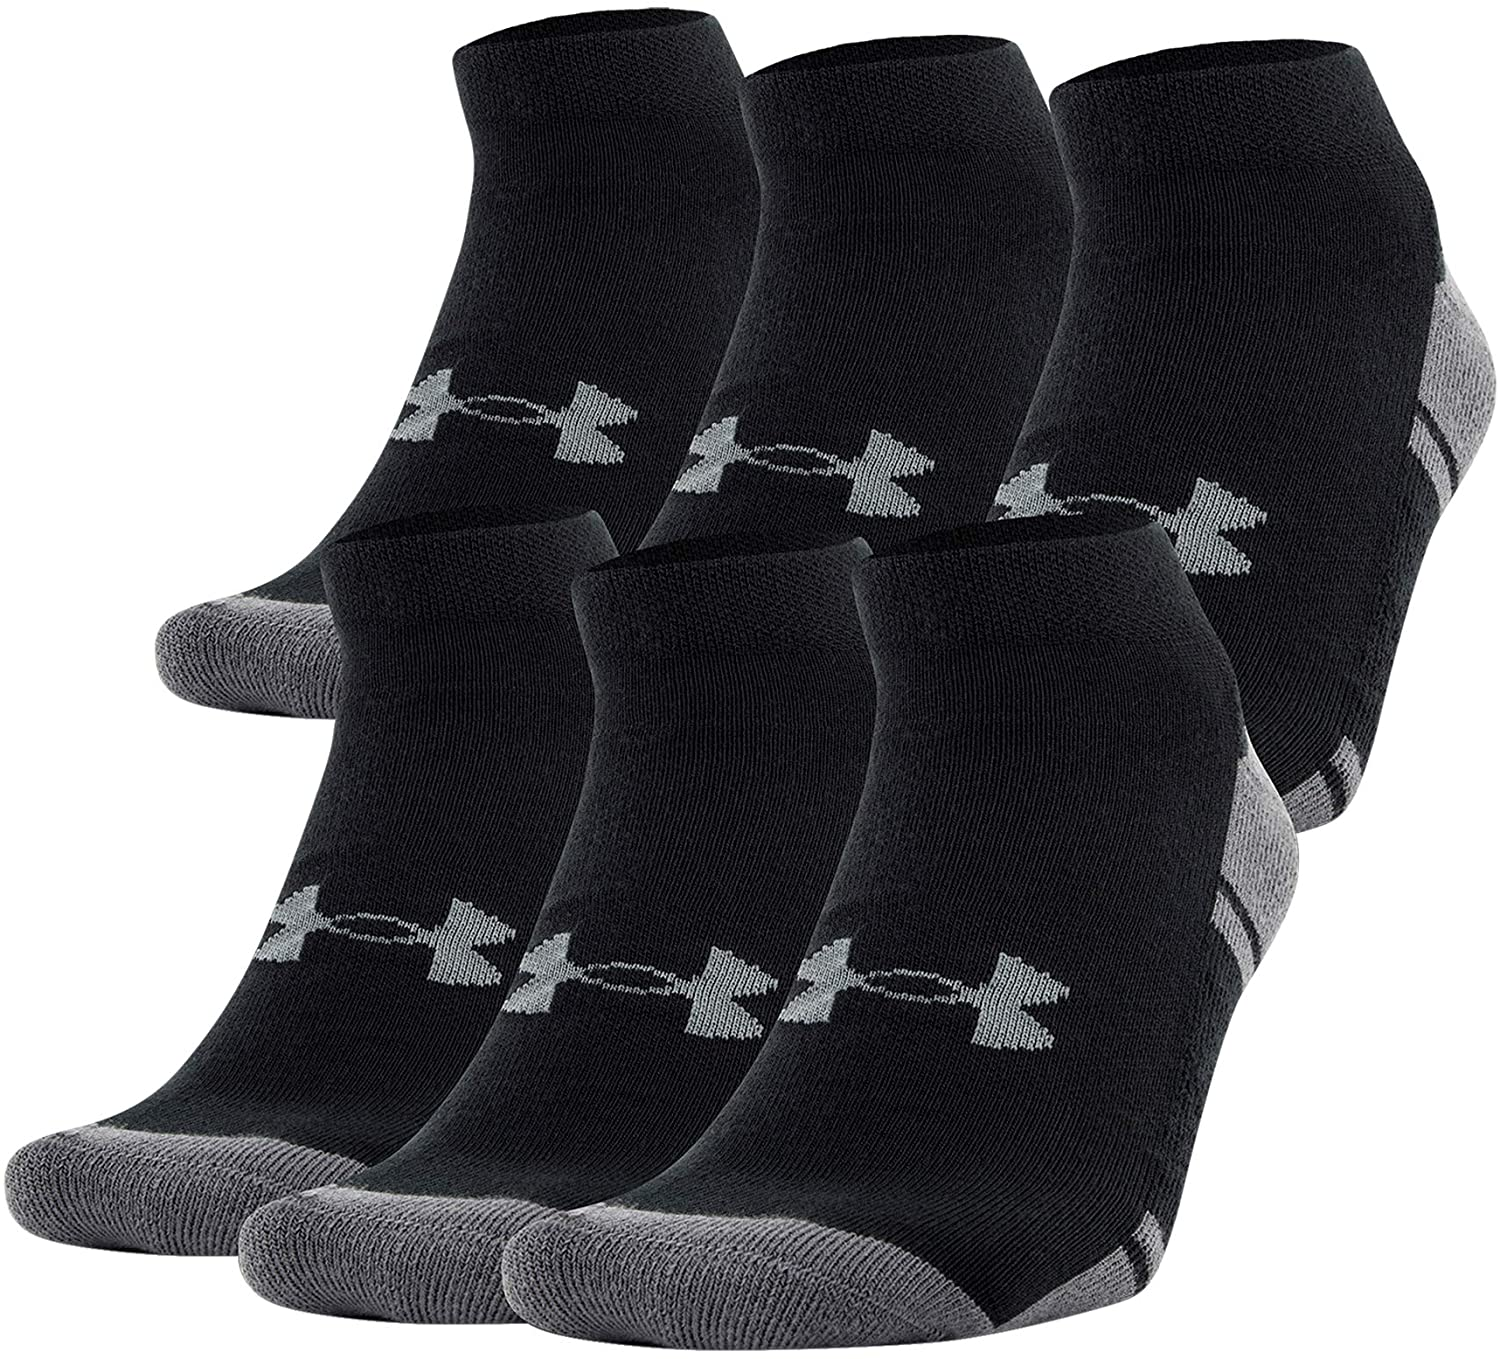 Under Armour Youth Resistor 3.0 Low Cut Socks , Black/Graphite (6-Pairs) , Small